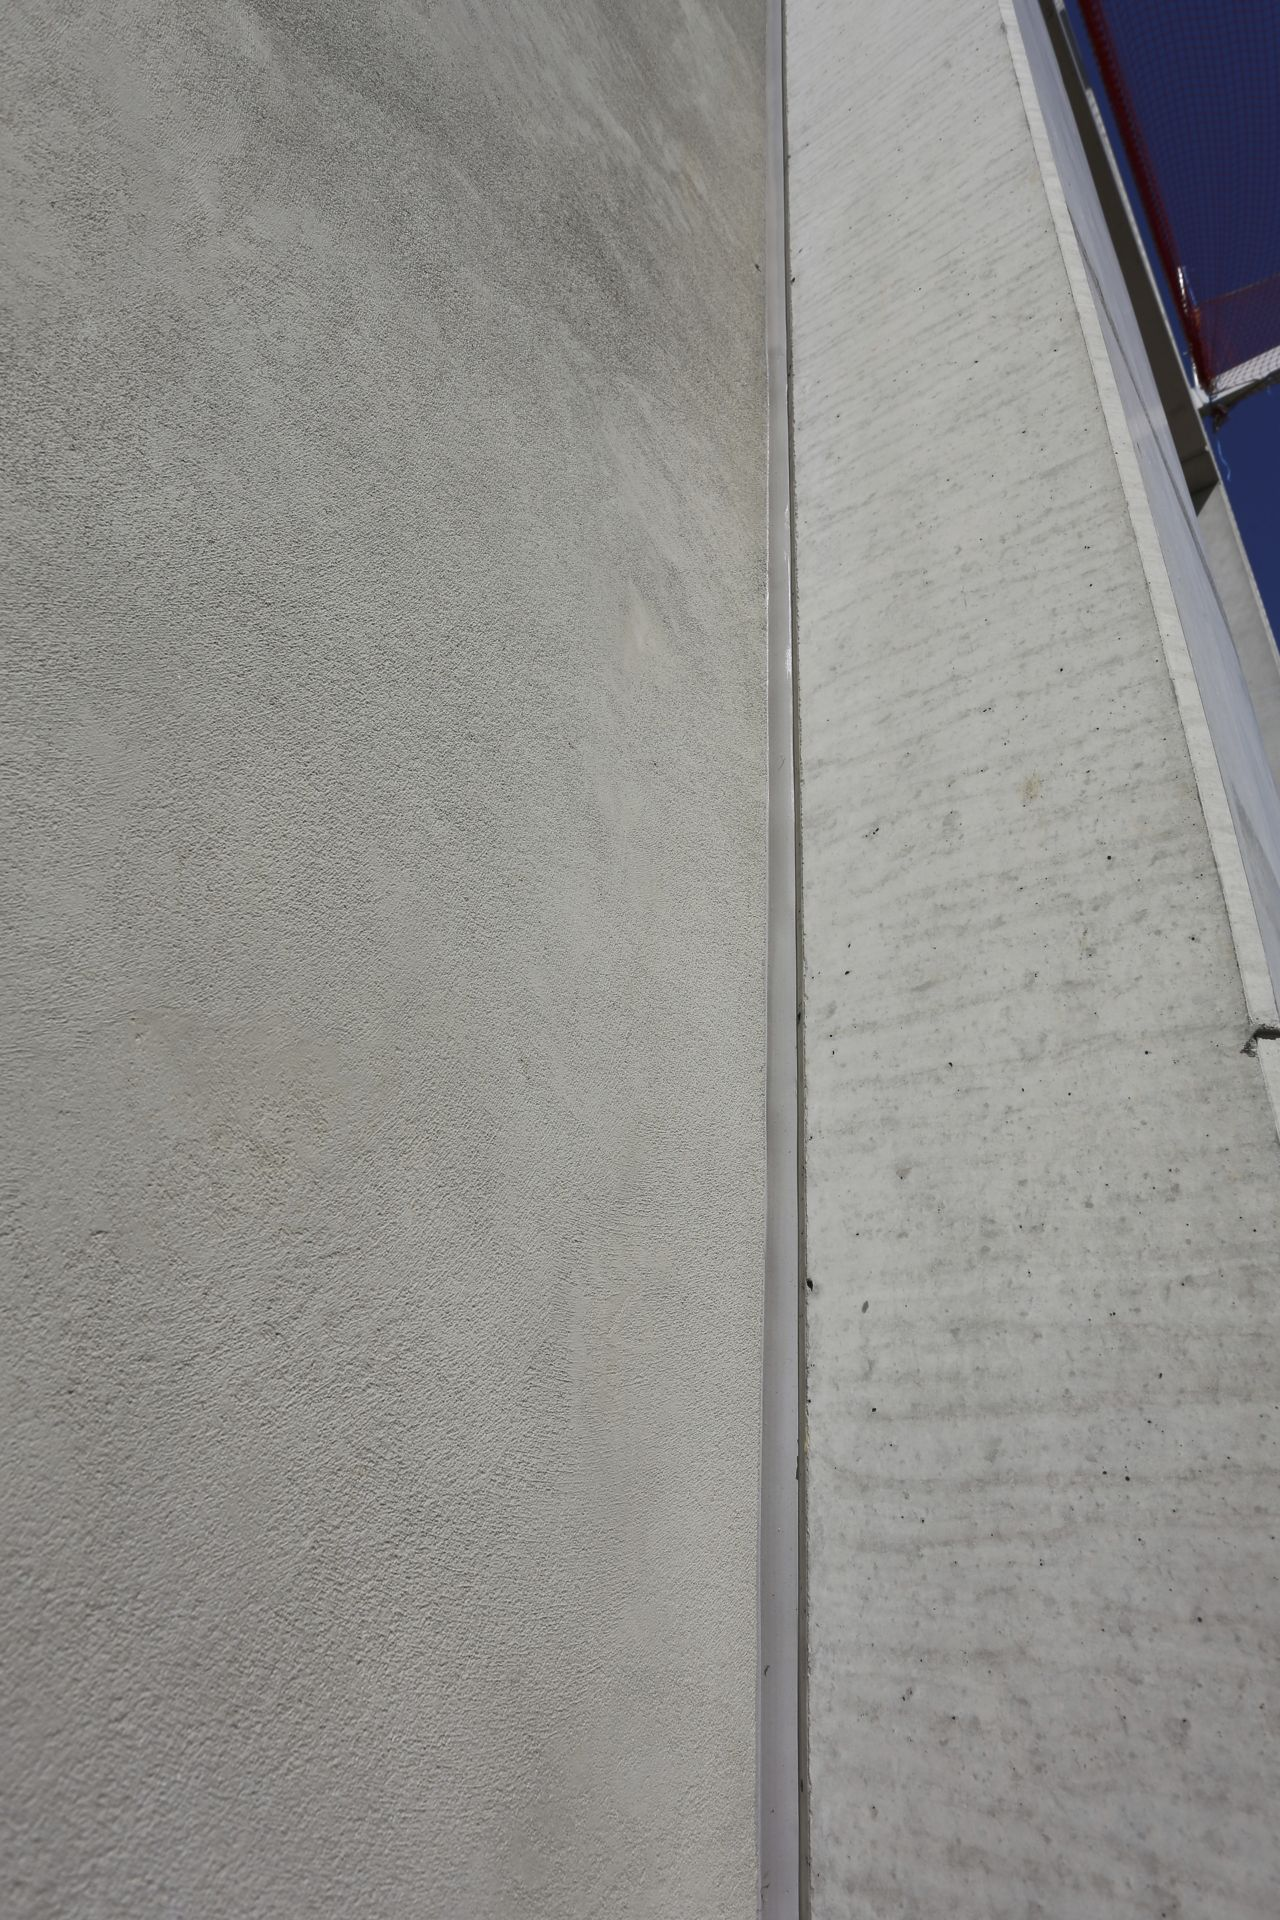 Joint Sealing applied on concrete walls